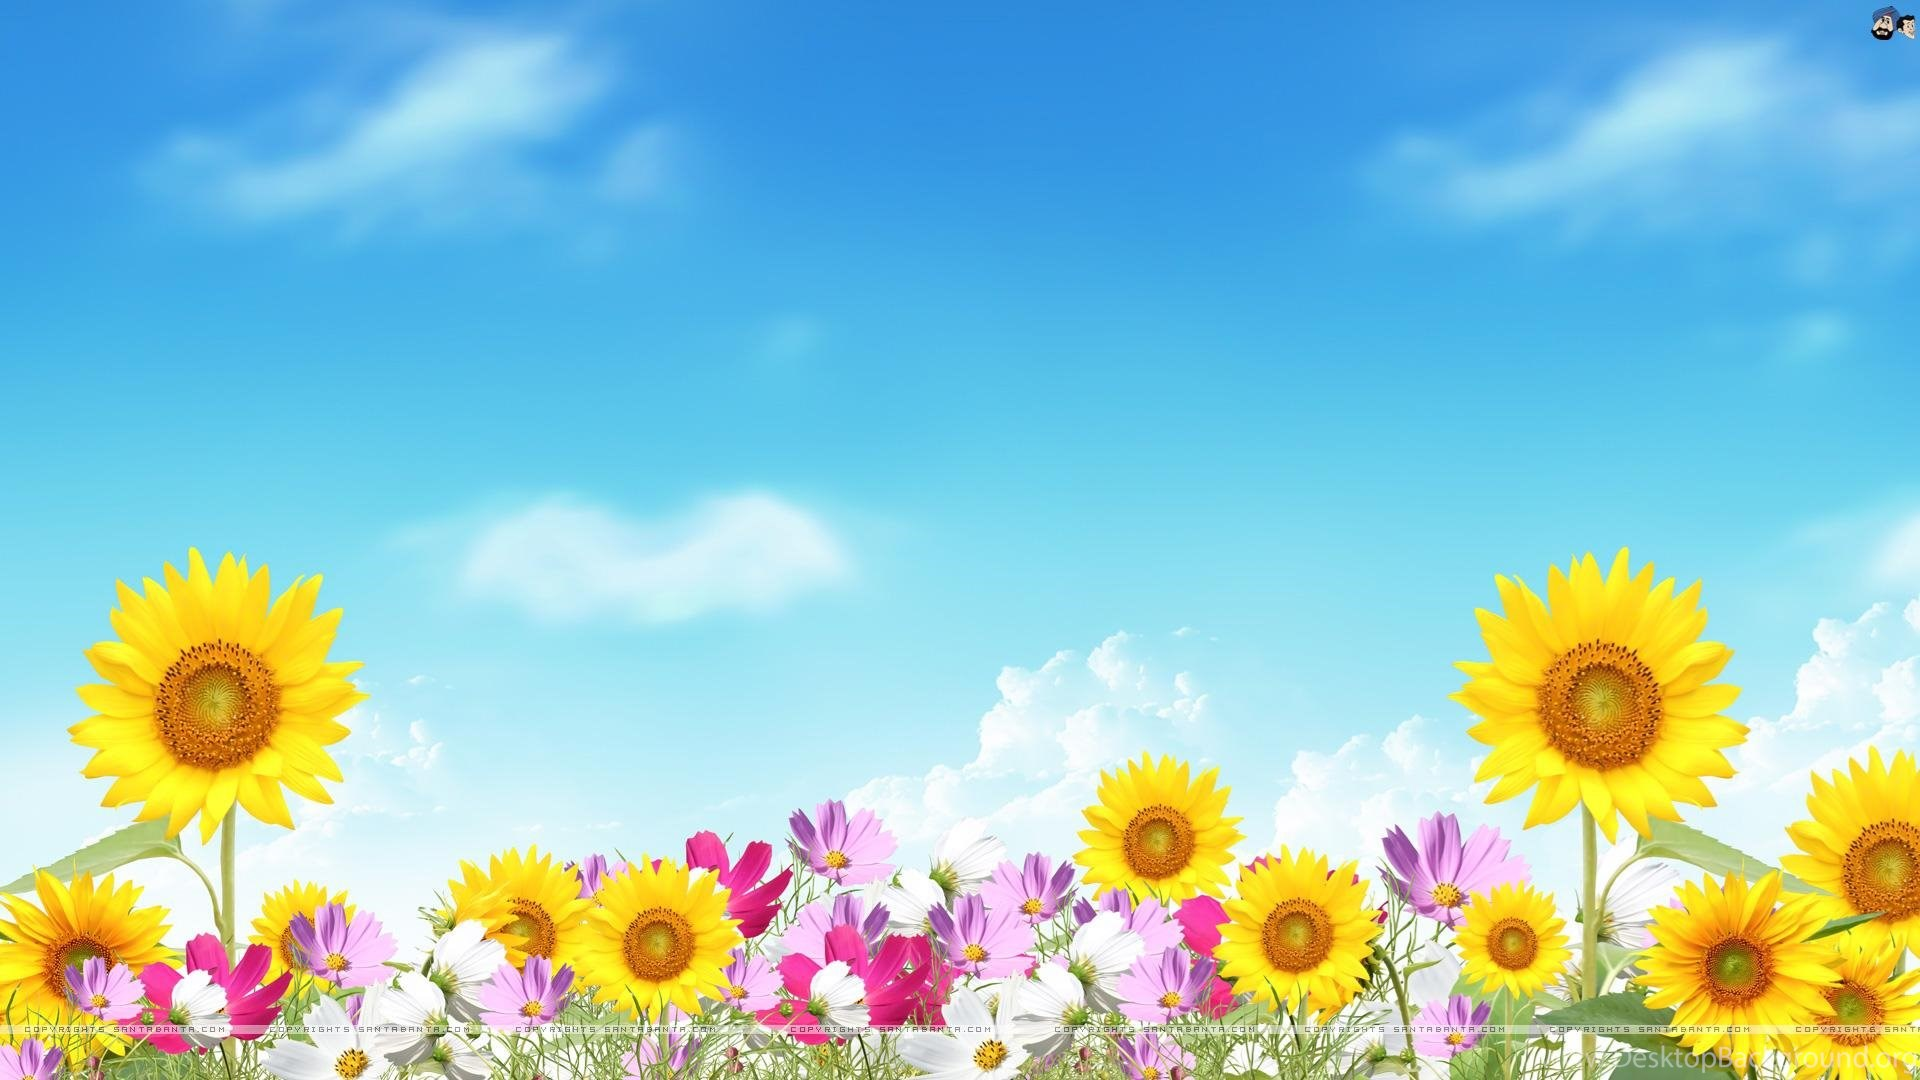 Summer backgrounds wallpapers and backgrounds desktop background popular voltagebd Images